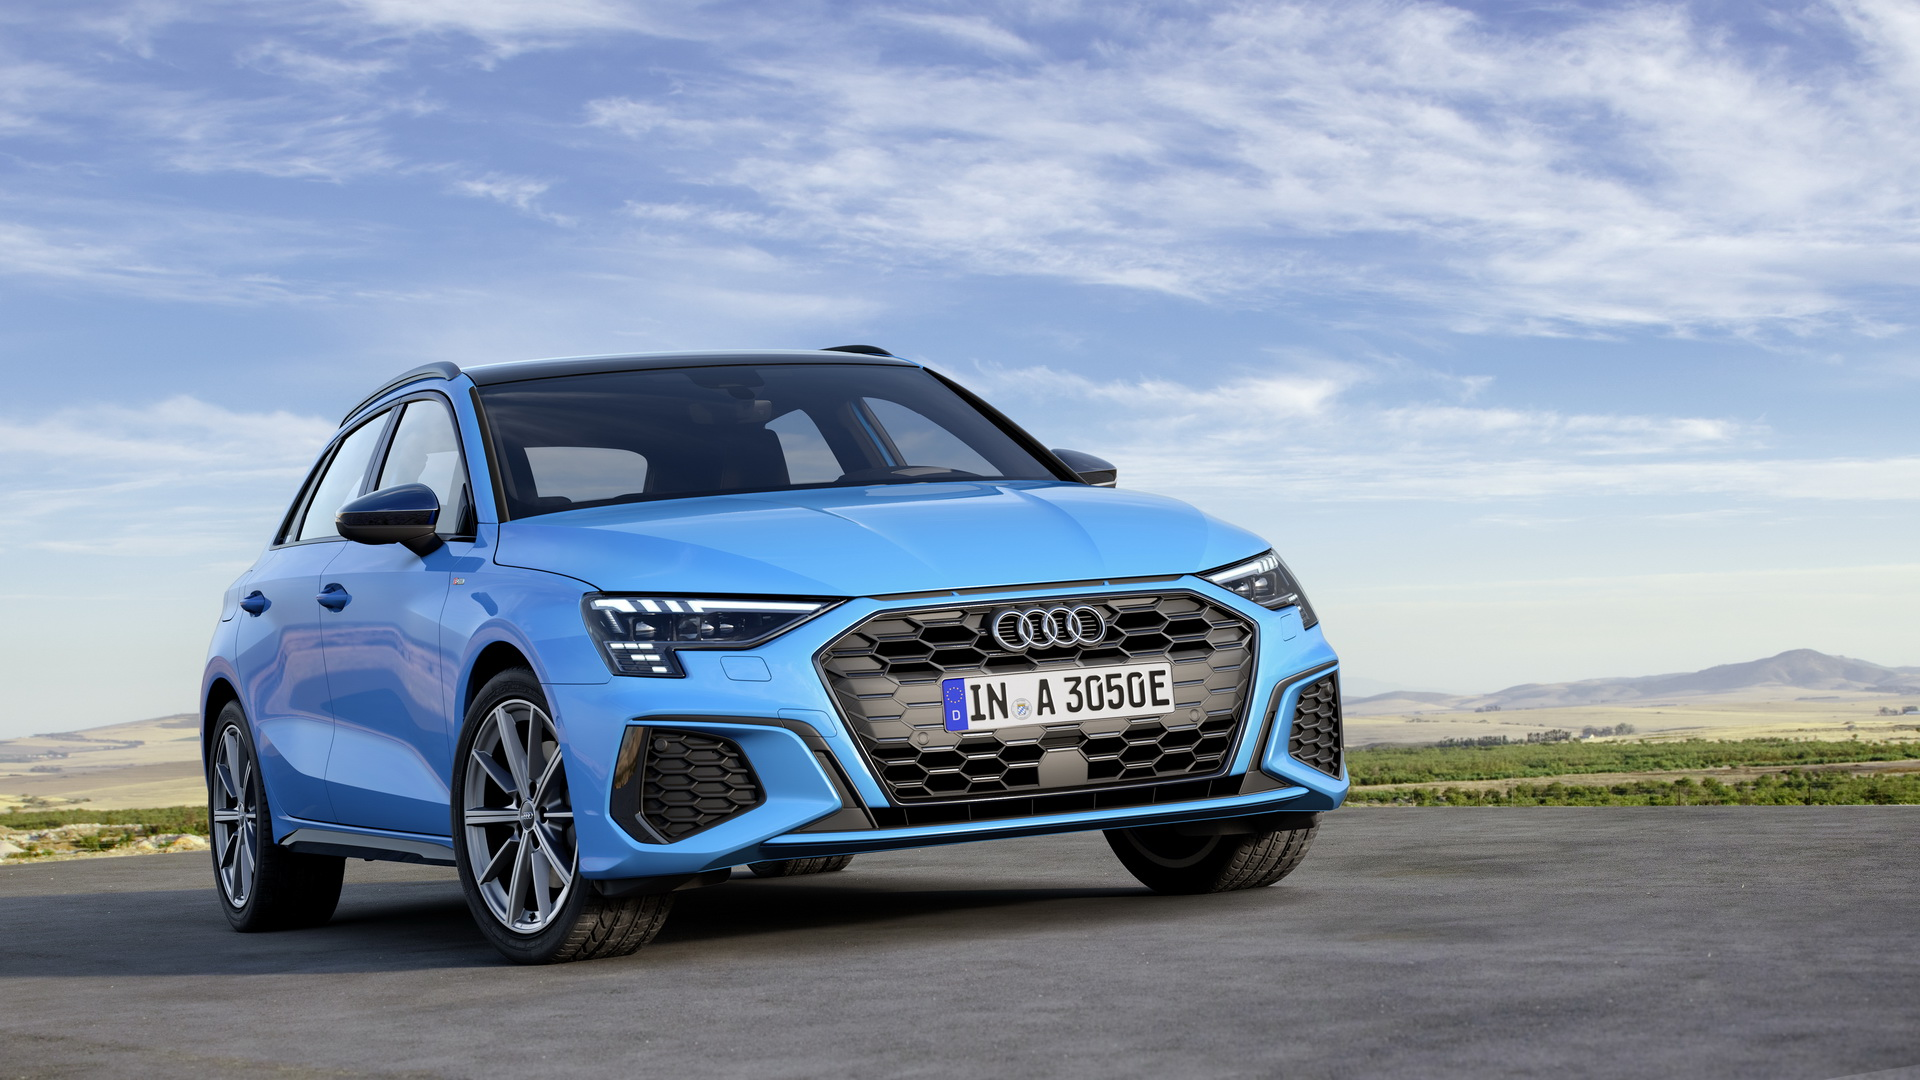 2021 Audi A3 Sportback Gets Plug-in Hybrid Power With 42 ...